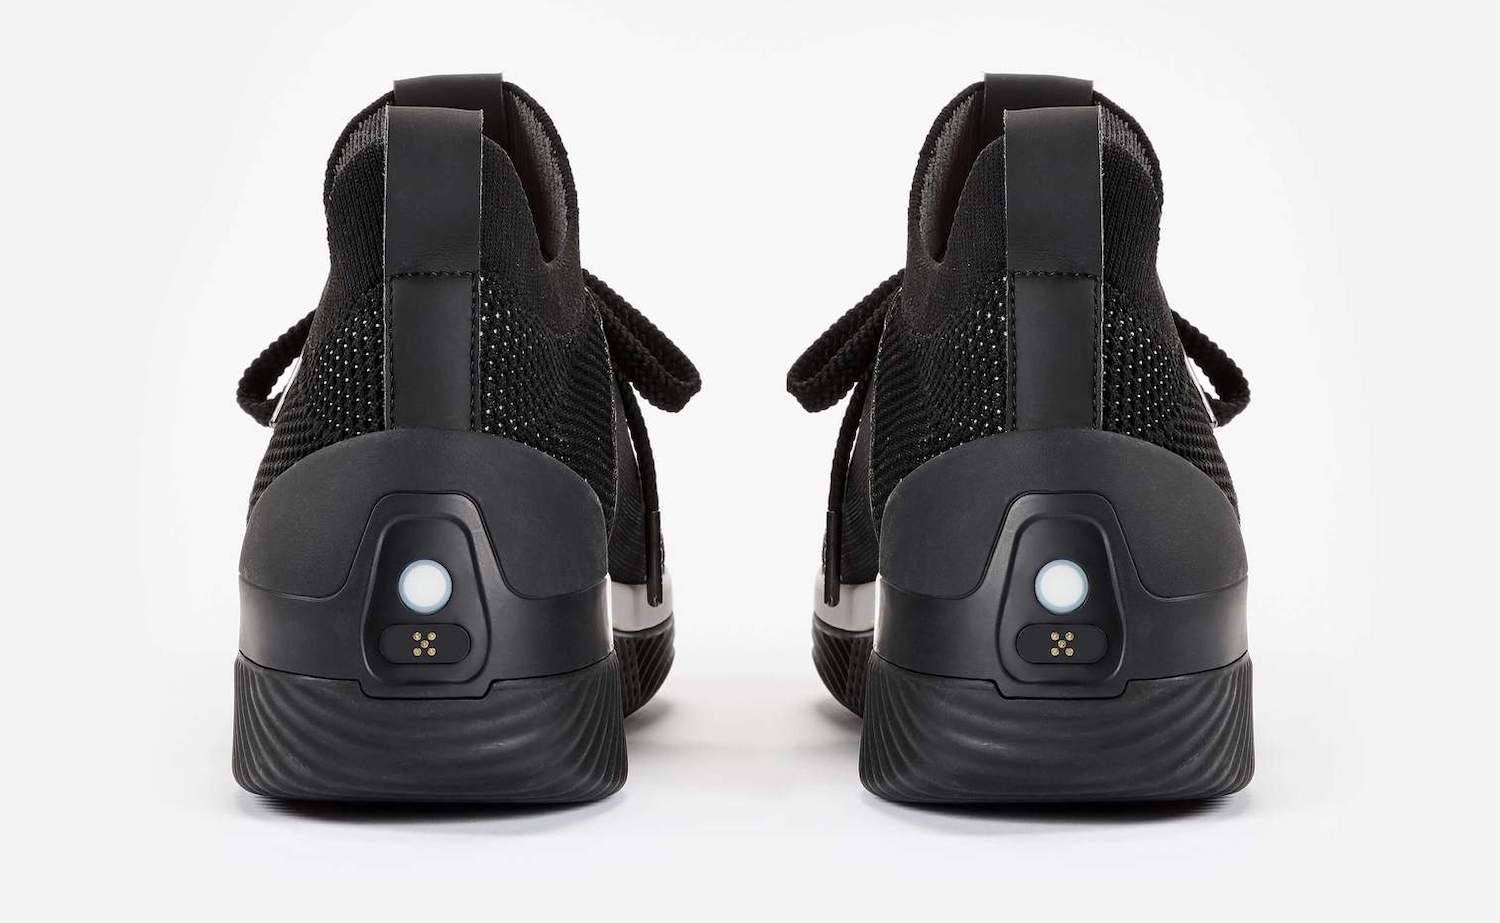 This Sound Immersion Footwear Lets You Feel the Music